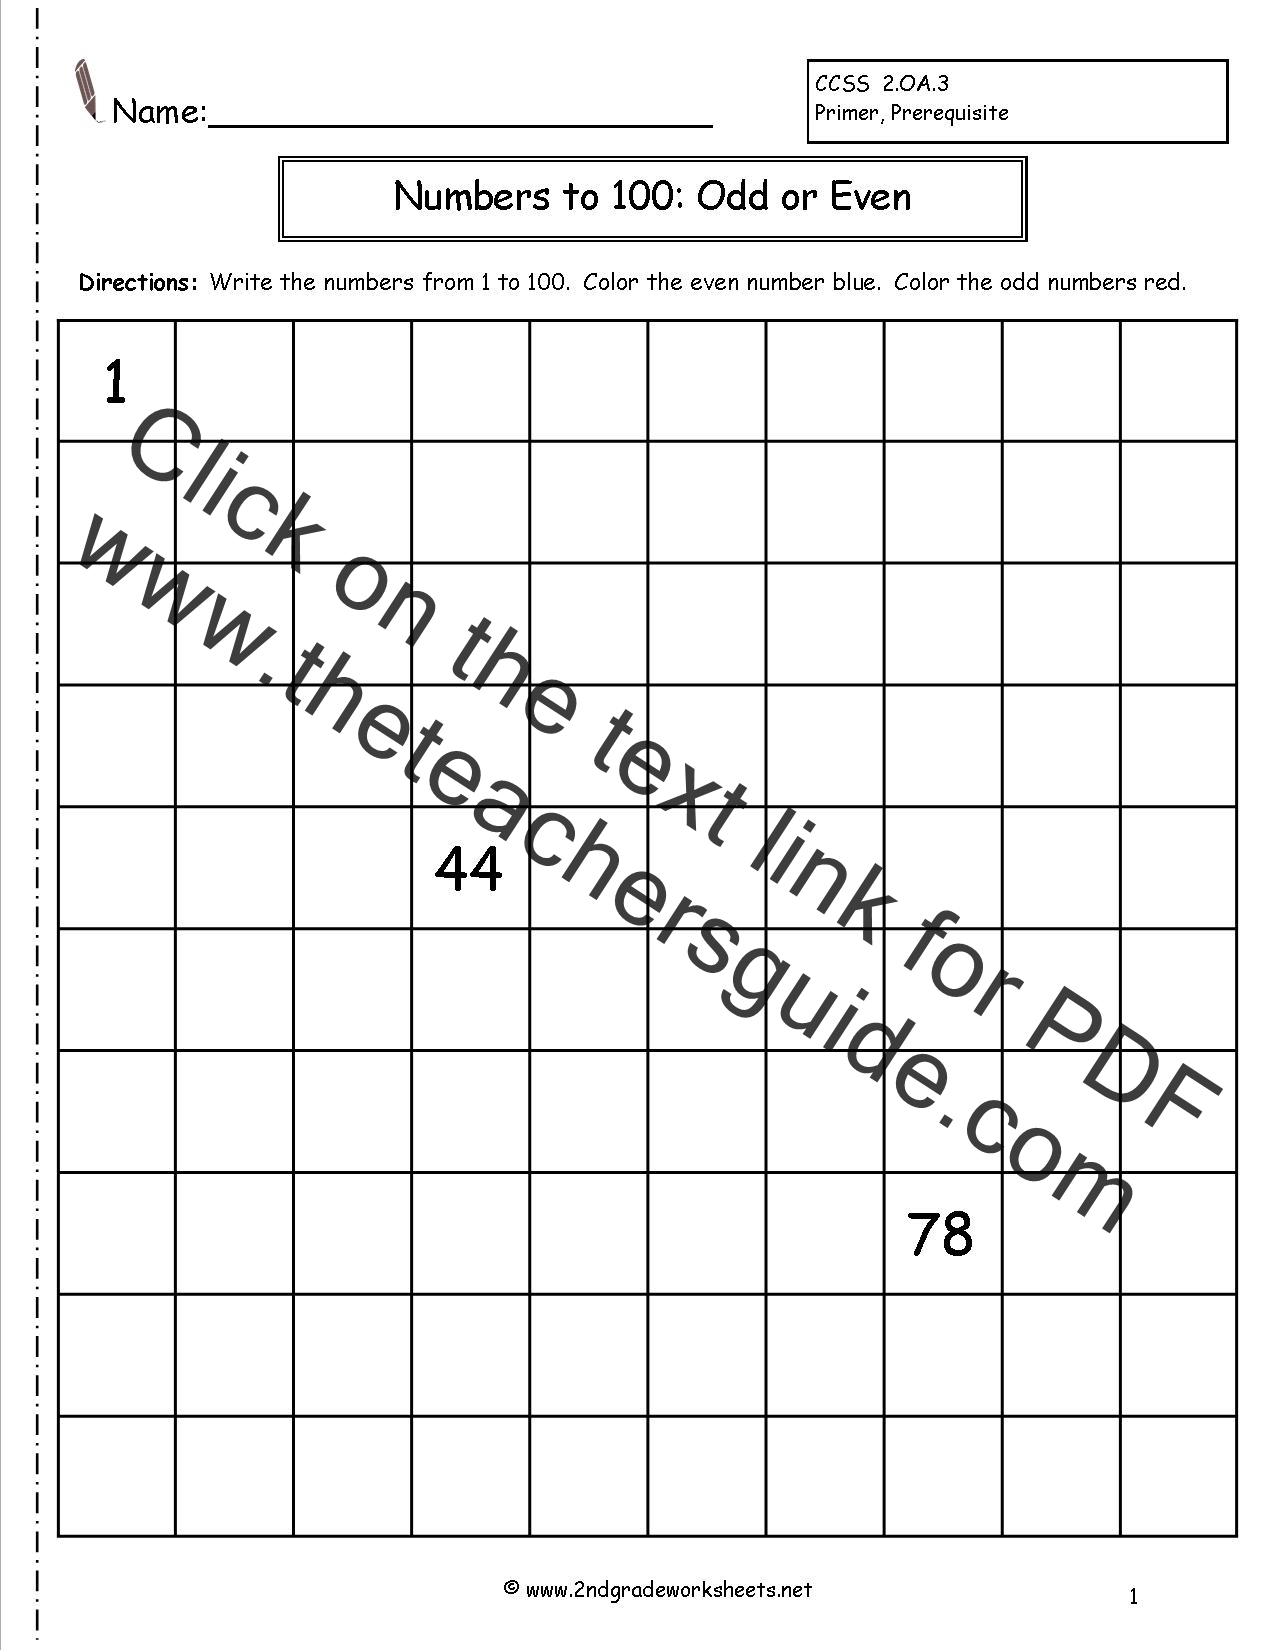 worksheet Even And Odd Worksheets For 2nd Grade even and odd numbers worksheets worksheet